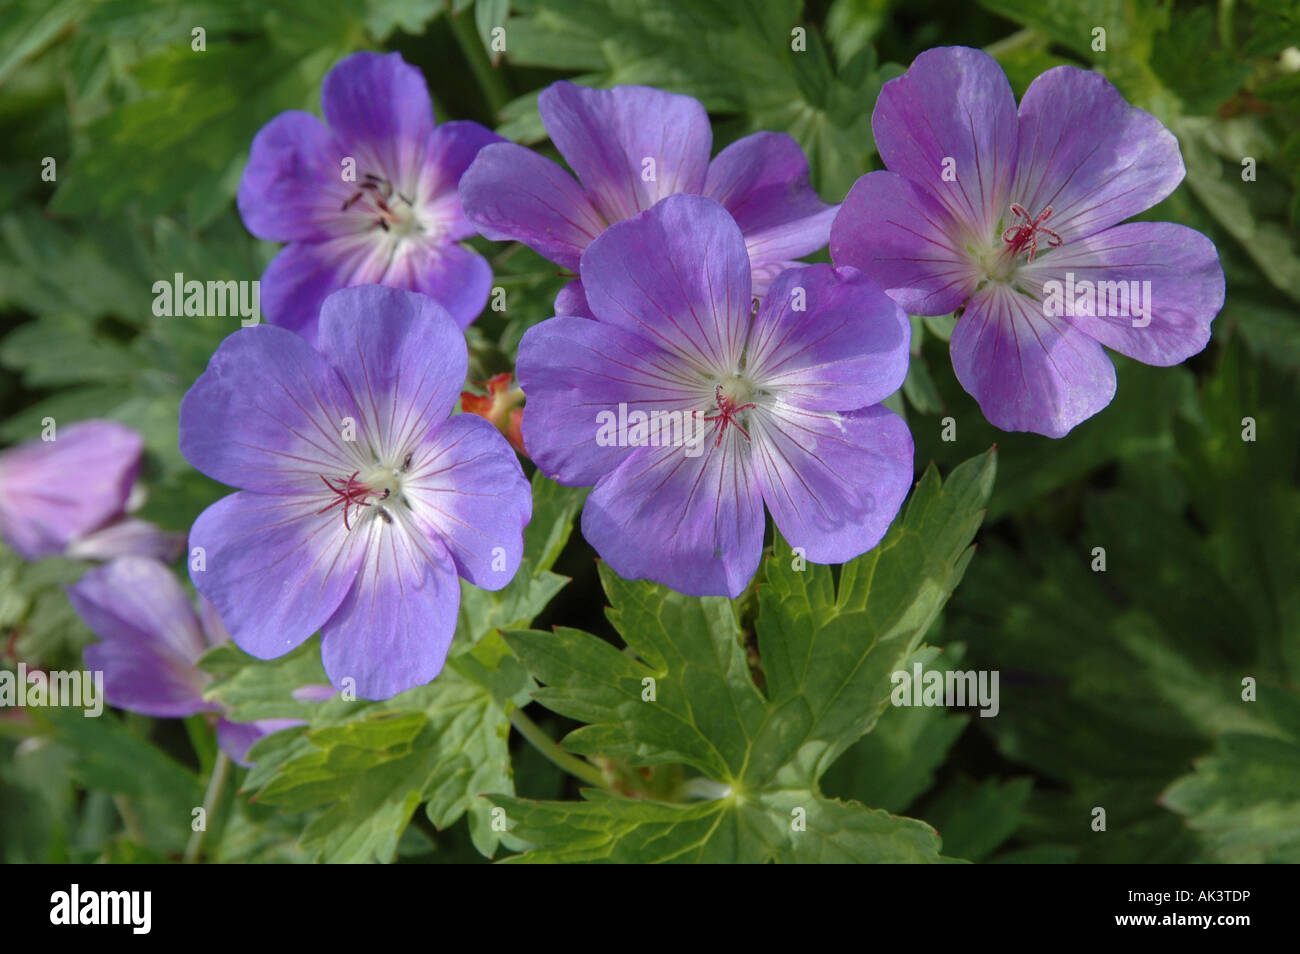 Hardy perennial geranium rozanne gerwat with light blue flowers a hardy perennial geranium rozanne gerwat with light blue flowers a great ground cover plant image taken june 2007 izmirmasajfo Images